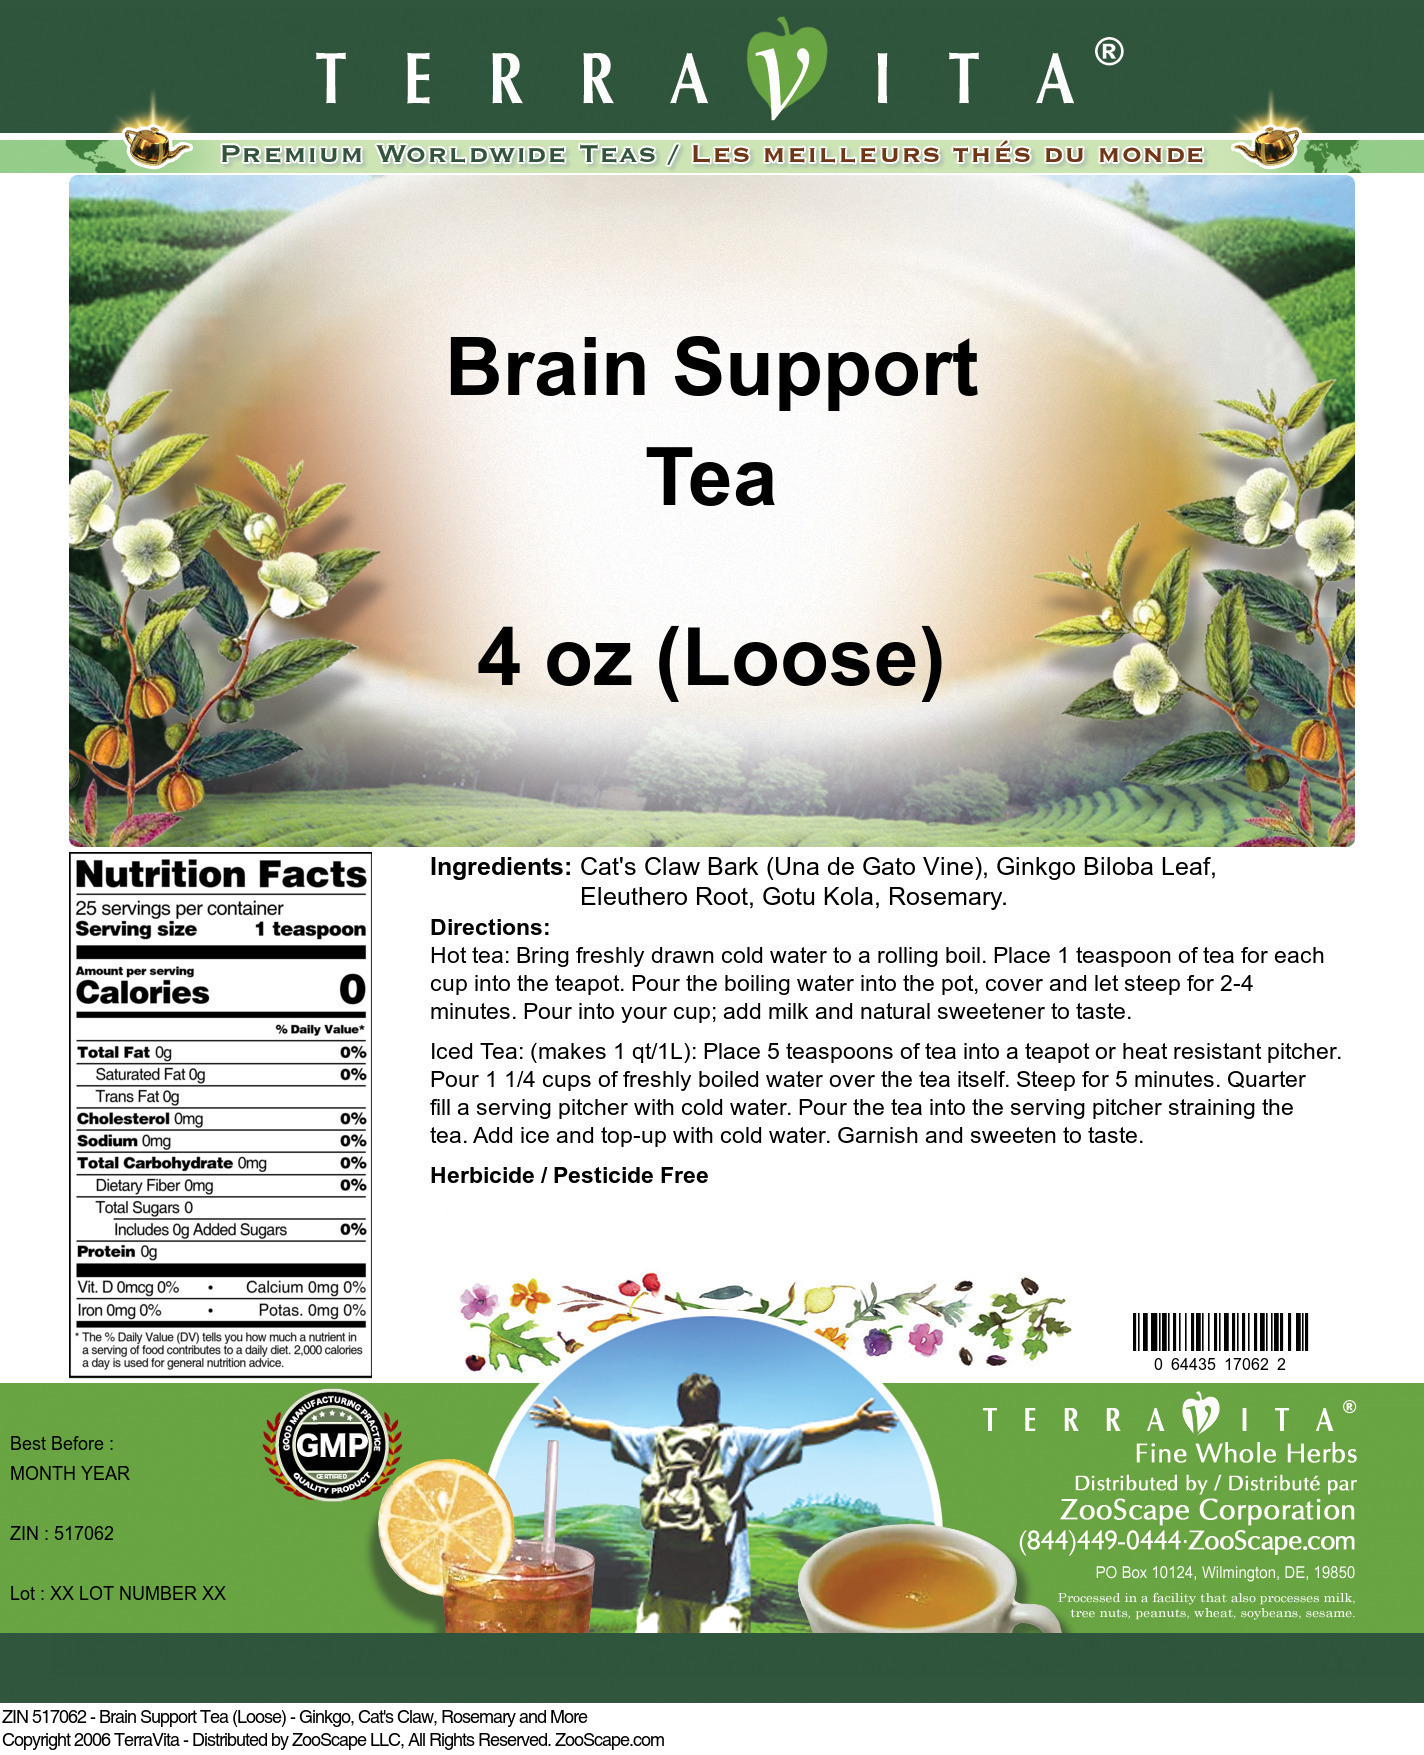 Brain Support Tea (Loose) - Ginkgo, Cat's Claw, Rosemary and More